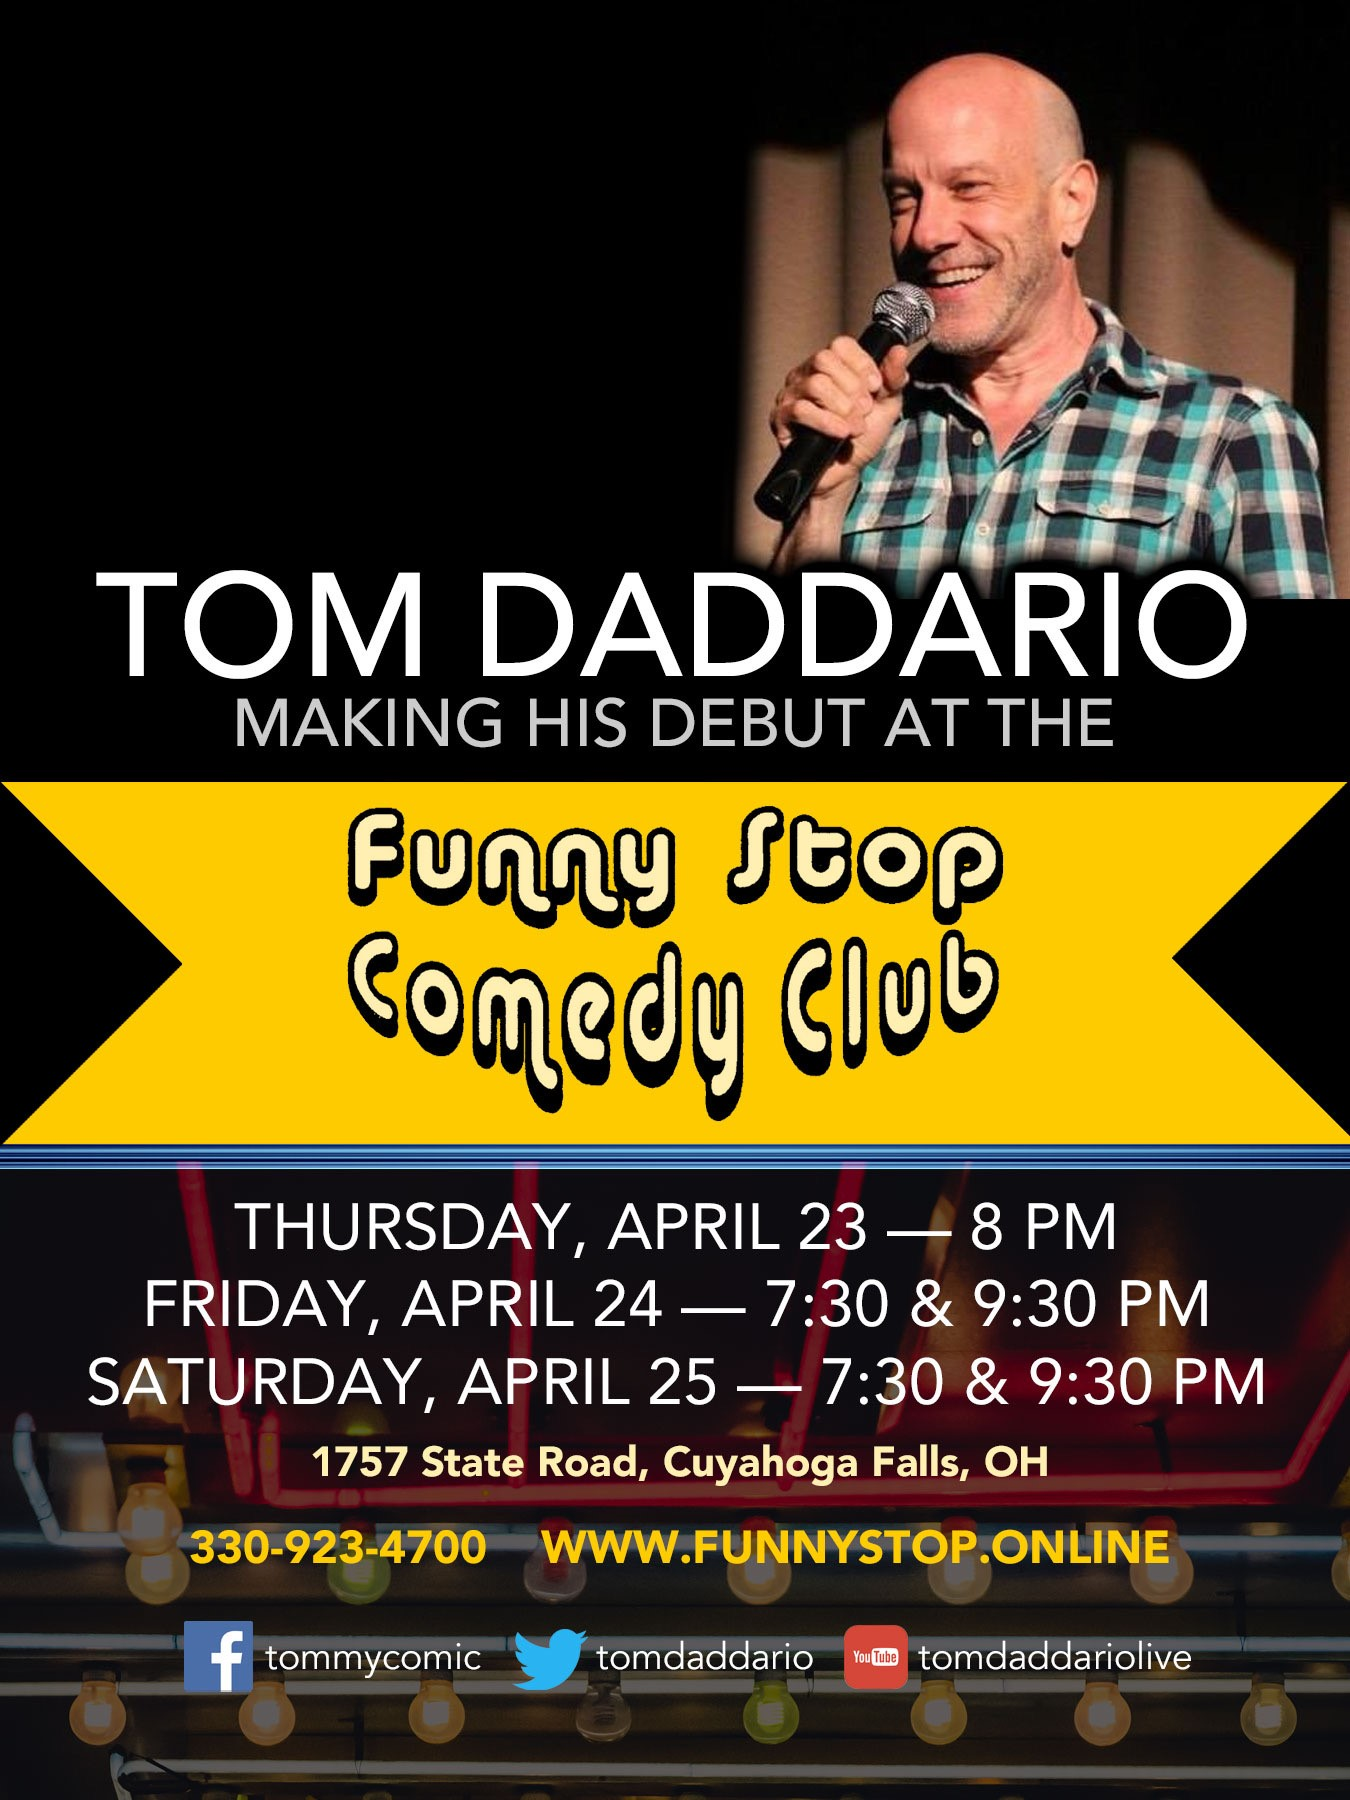 Tom Daddario 7:30 Show  on abr. 25, 19:30@Funny Stop Comedy Club - Buy tickets and Get information on Funny Stop funnystop.online